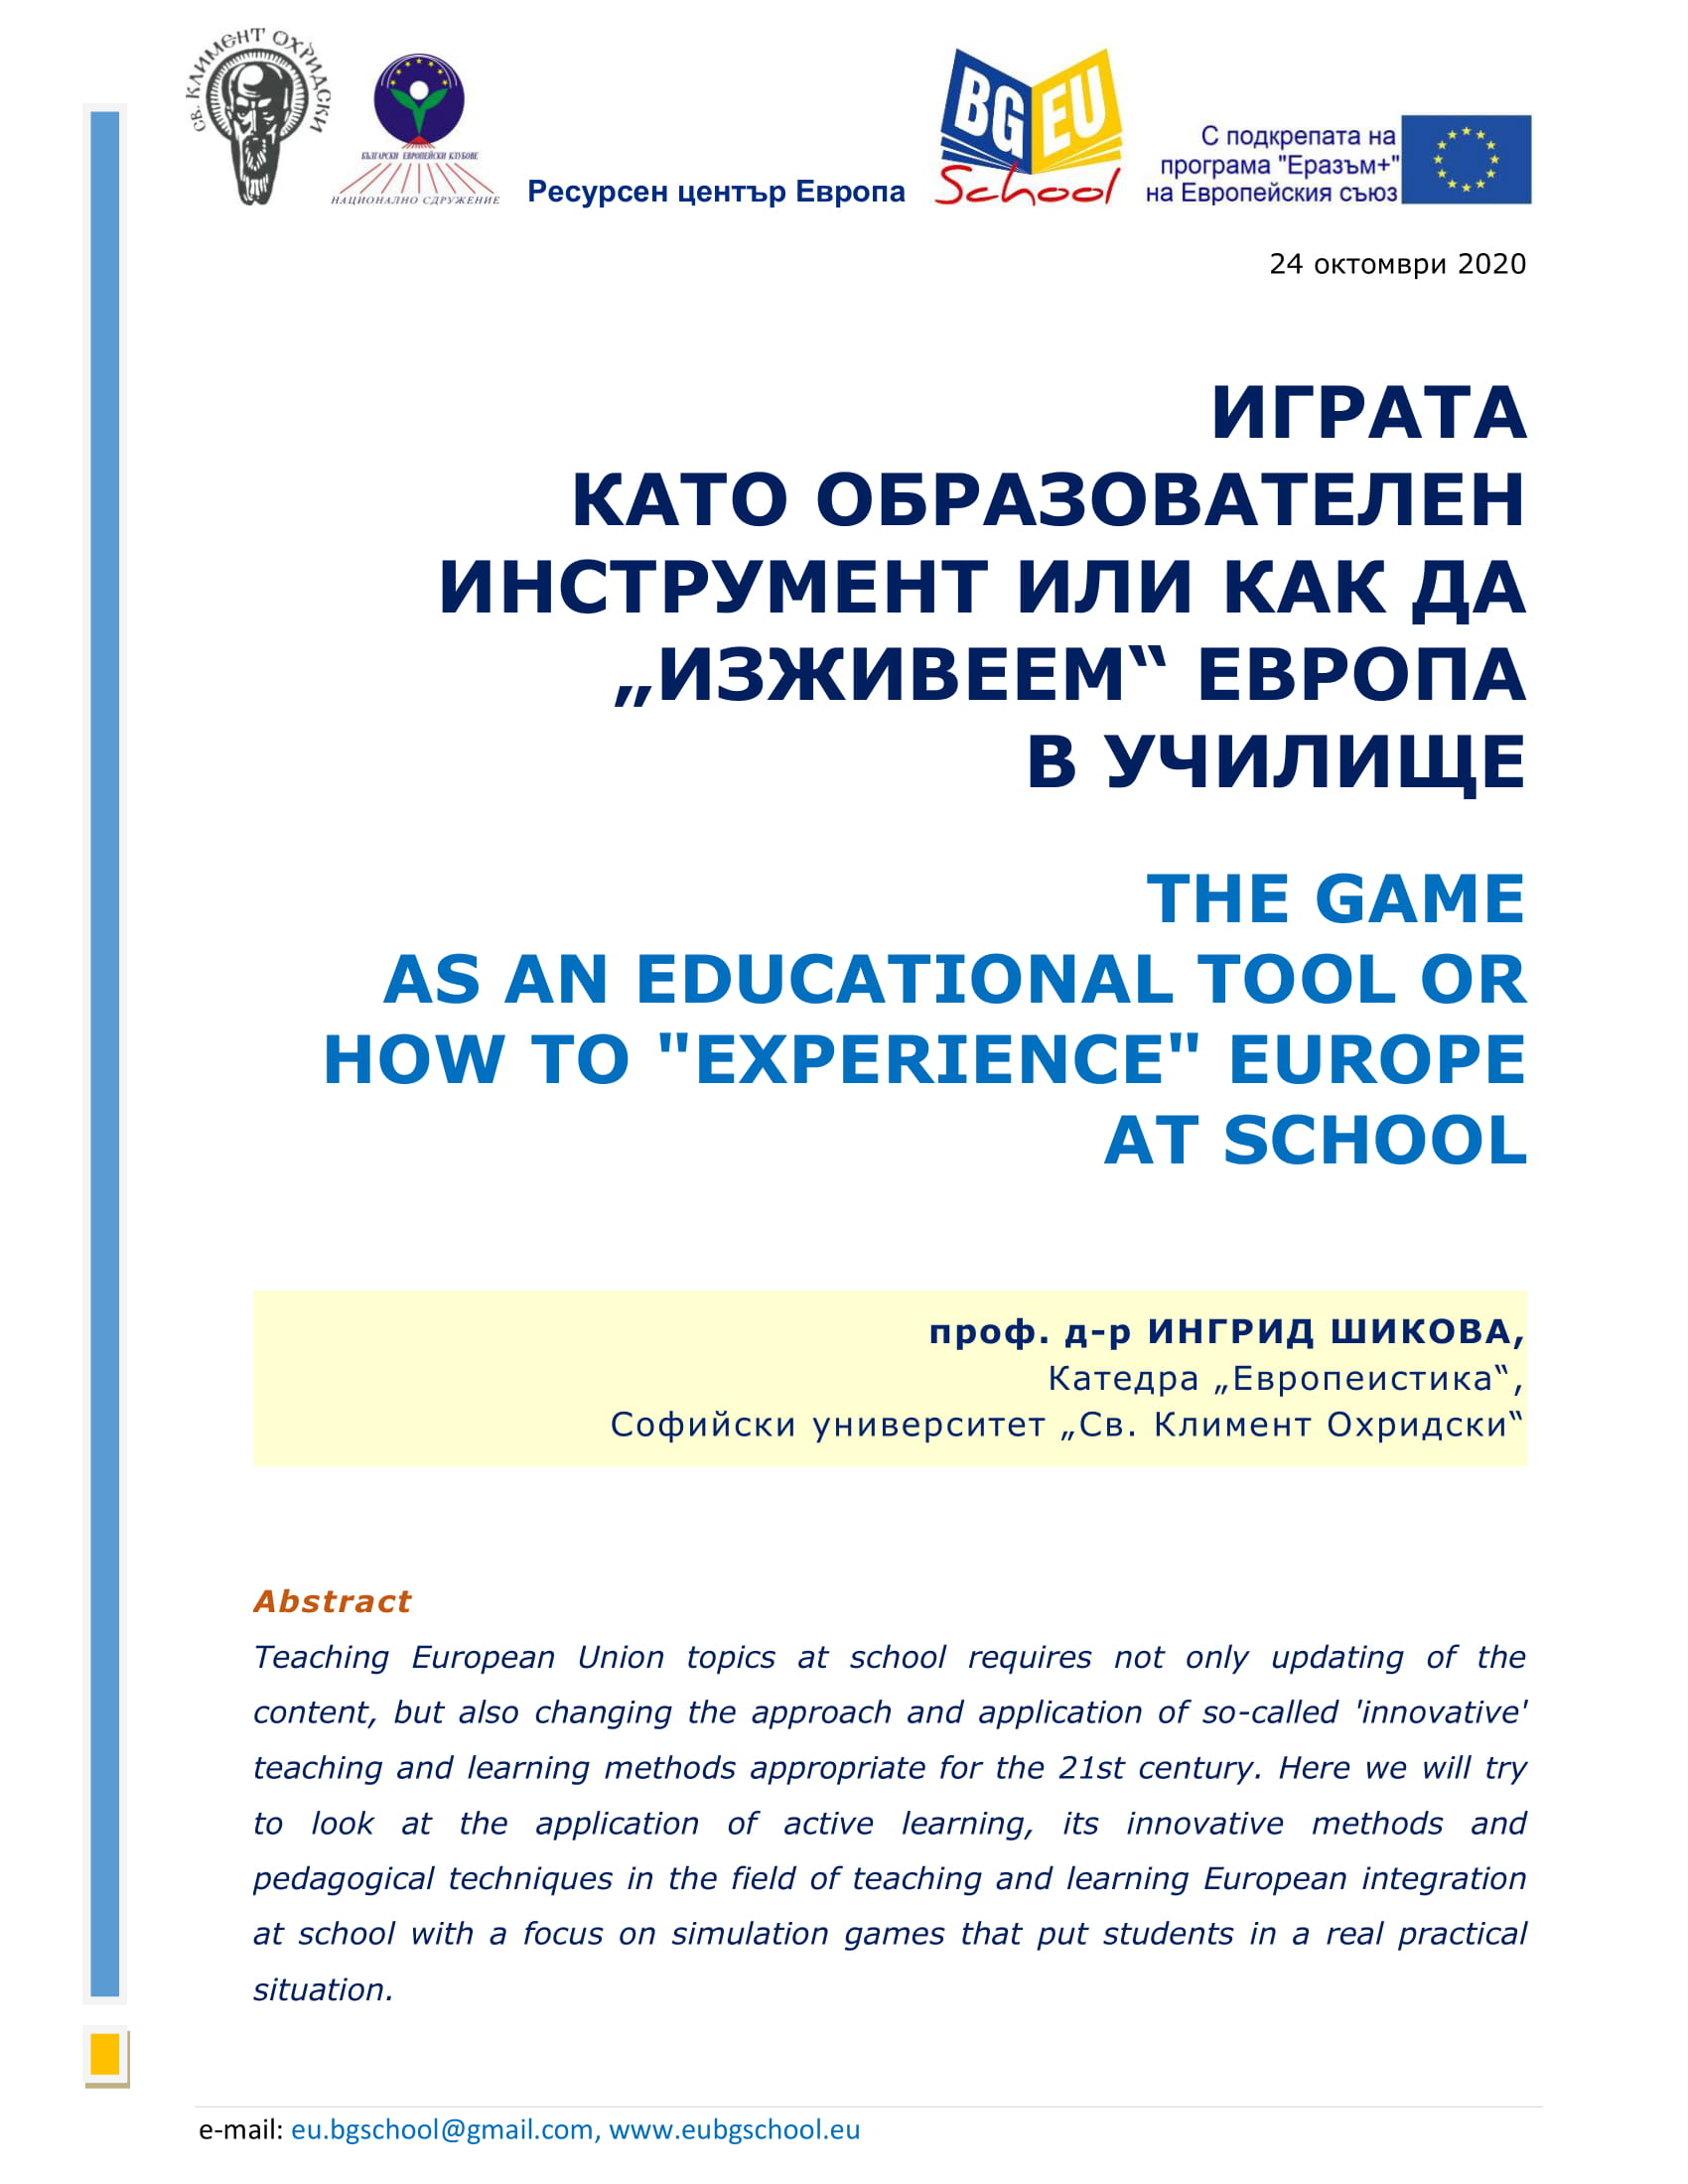 """THE GAME AS AN EDUCATIONAL TOOL OR HOW TO """"EXPERIENCE"""" EUROPE AT SCHOOL"""